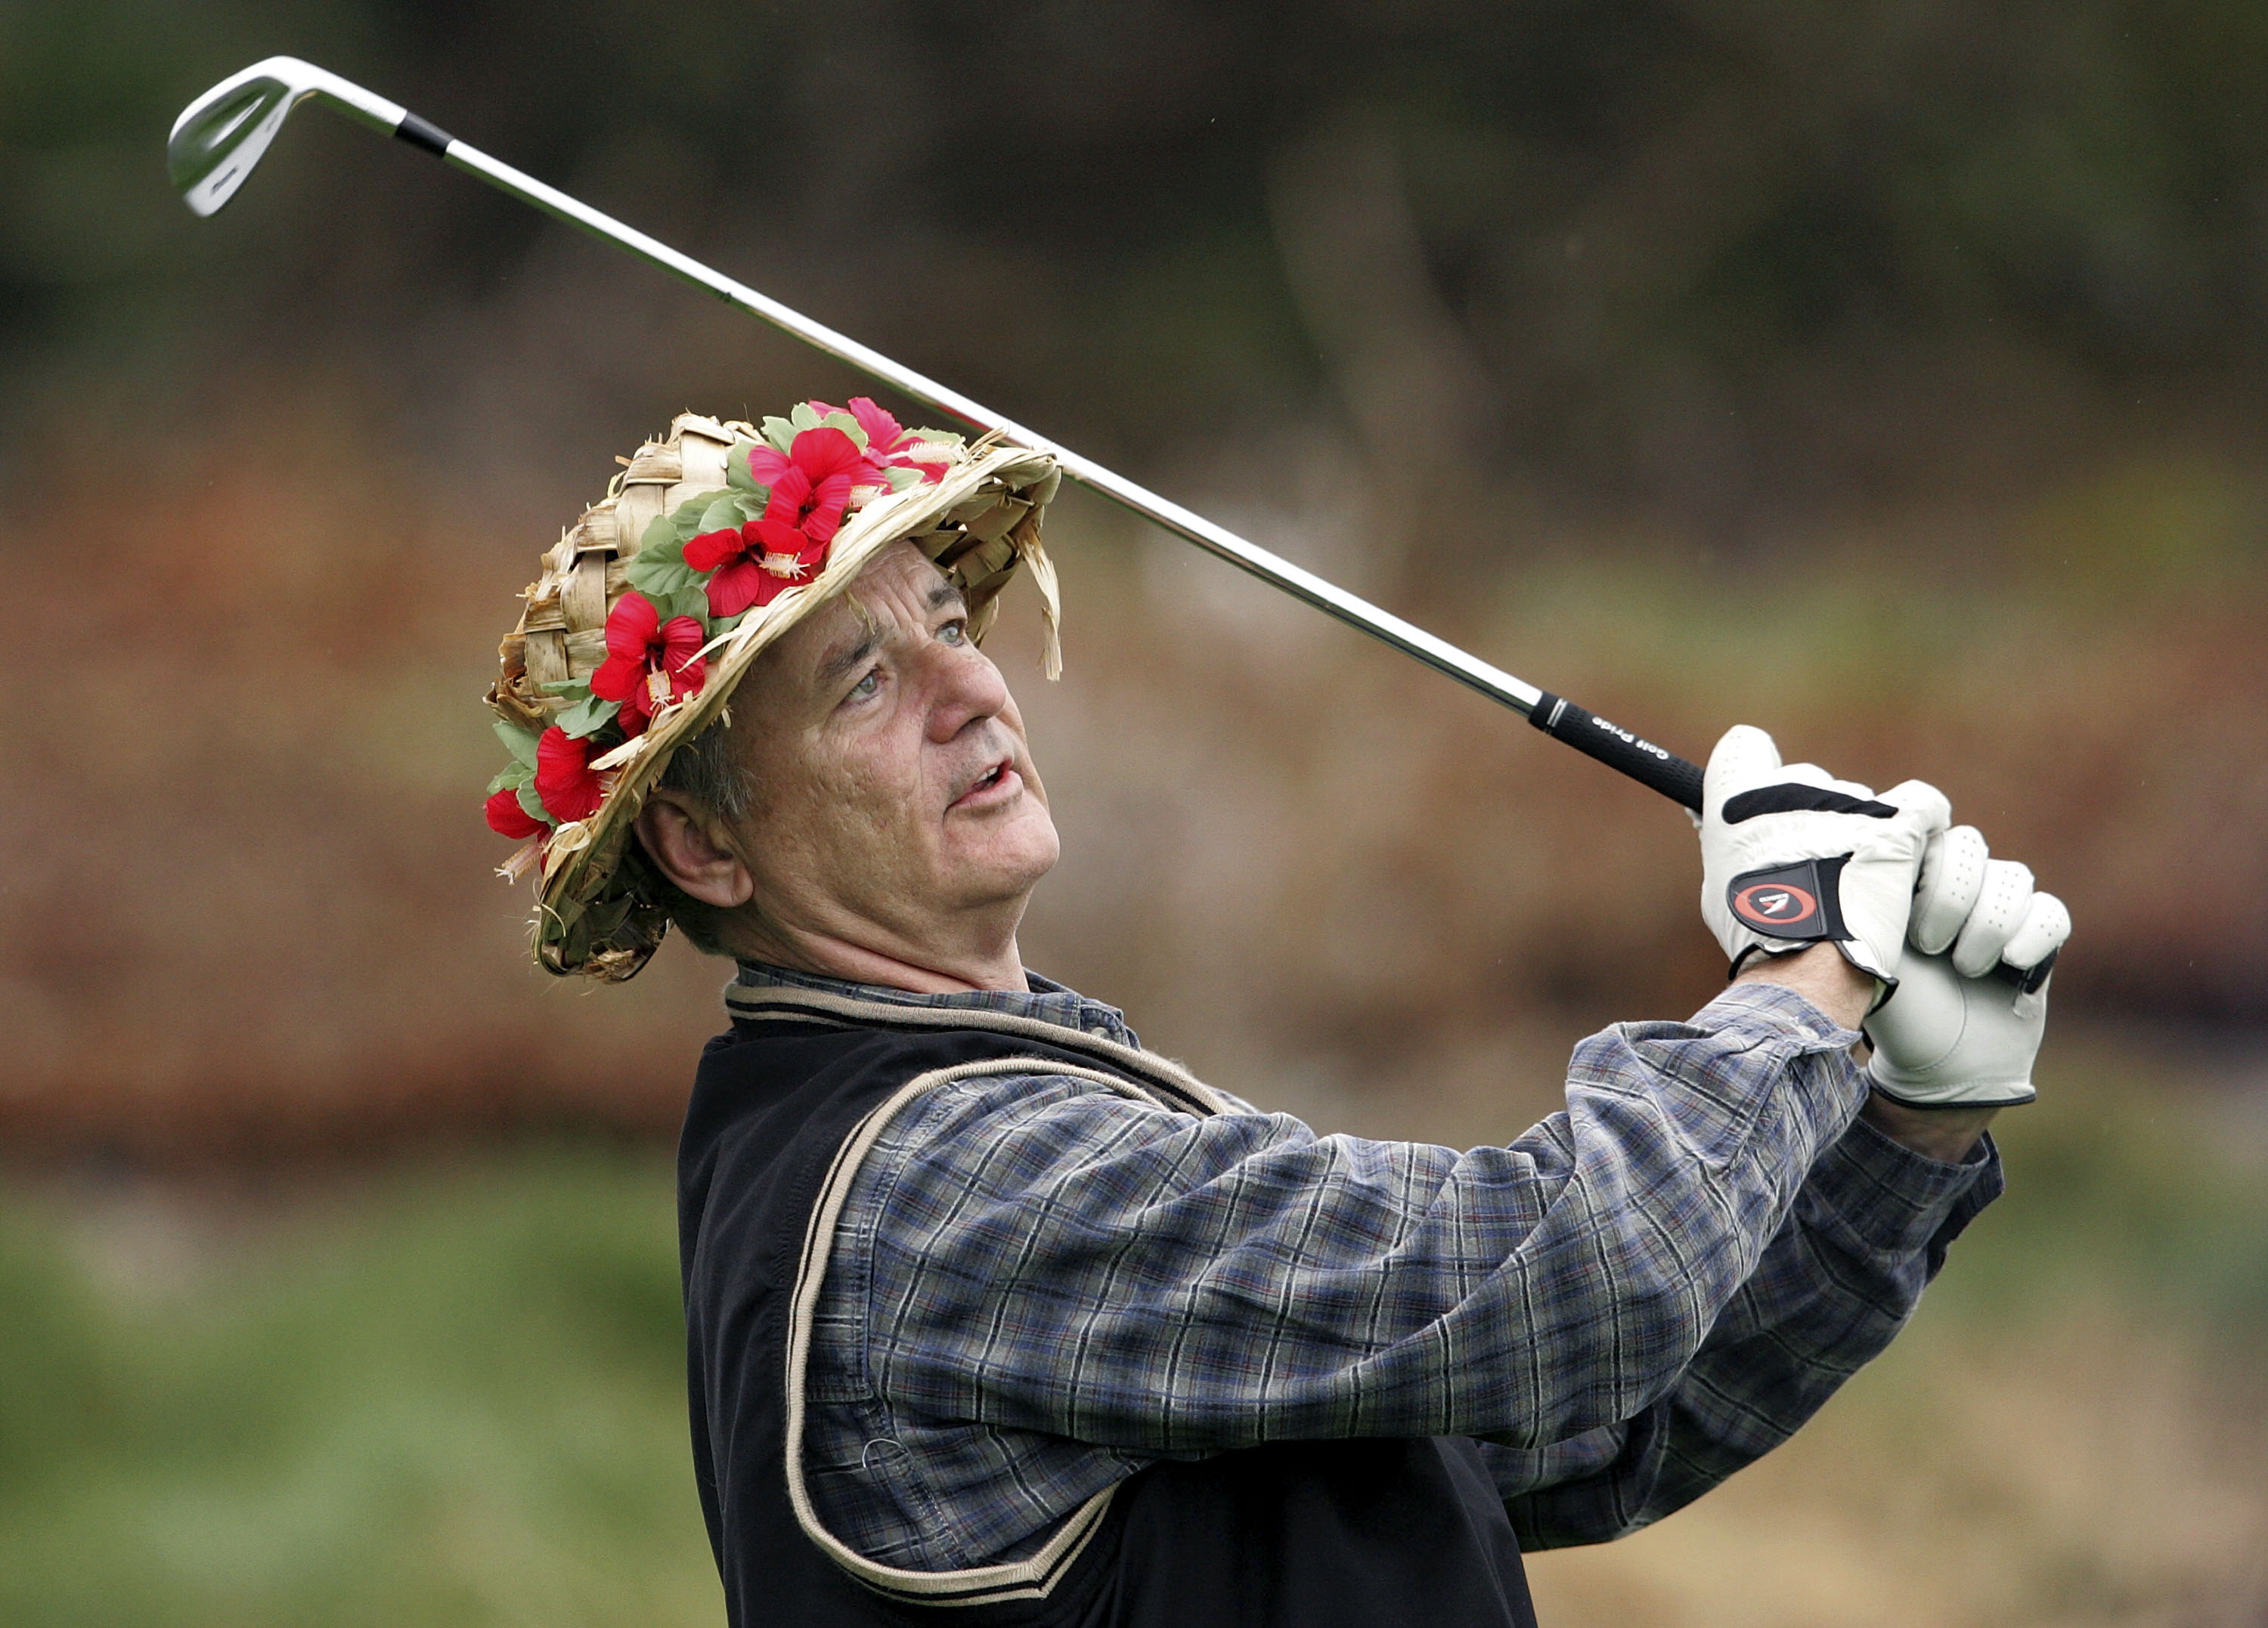 PEBBLE BEACH, CA - FEBRUARY 08:  Actor Bill Murray tees off from the 2nd tee of Spyglass Hill Golf Course during the first round of the AT&T Pebble Beach National Pro-Am February 8, 2007 in Pebble Beach, California.  (Photo by Justin Sullivan/Getty Images)